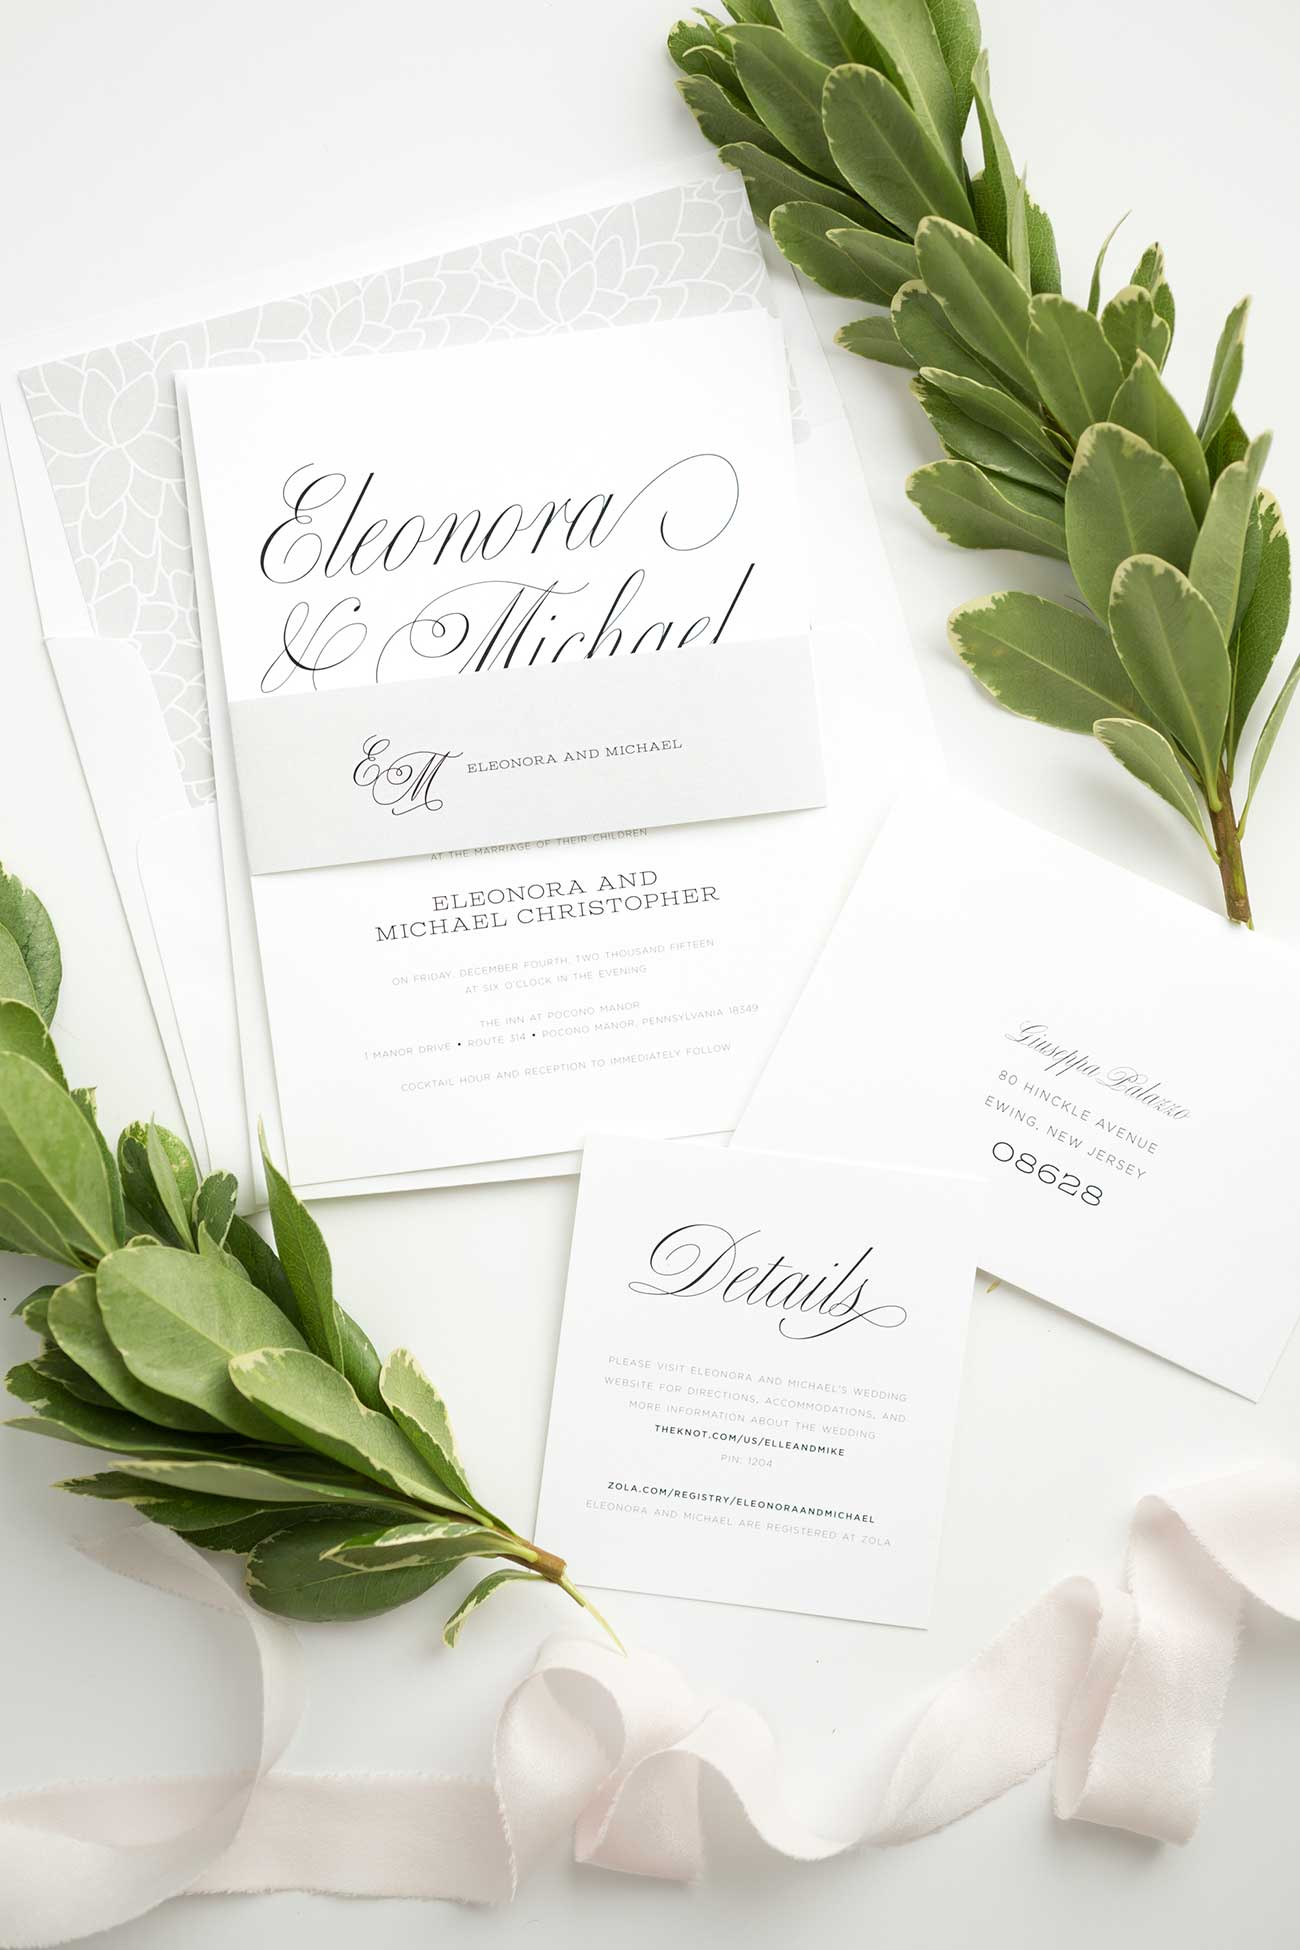 Elegant Garden Wedding Invitation Suite in Gray with a Floral Envelope Liner